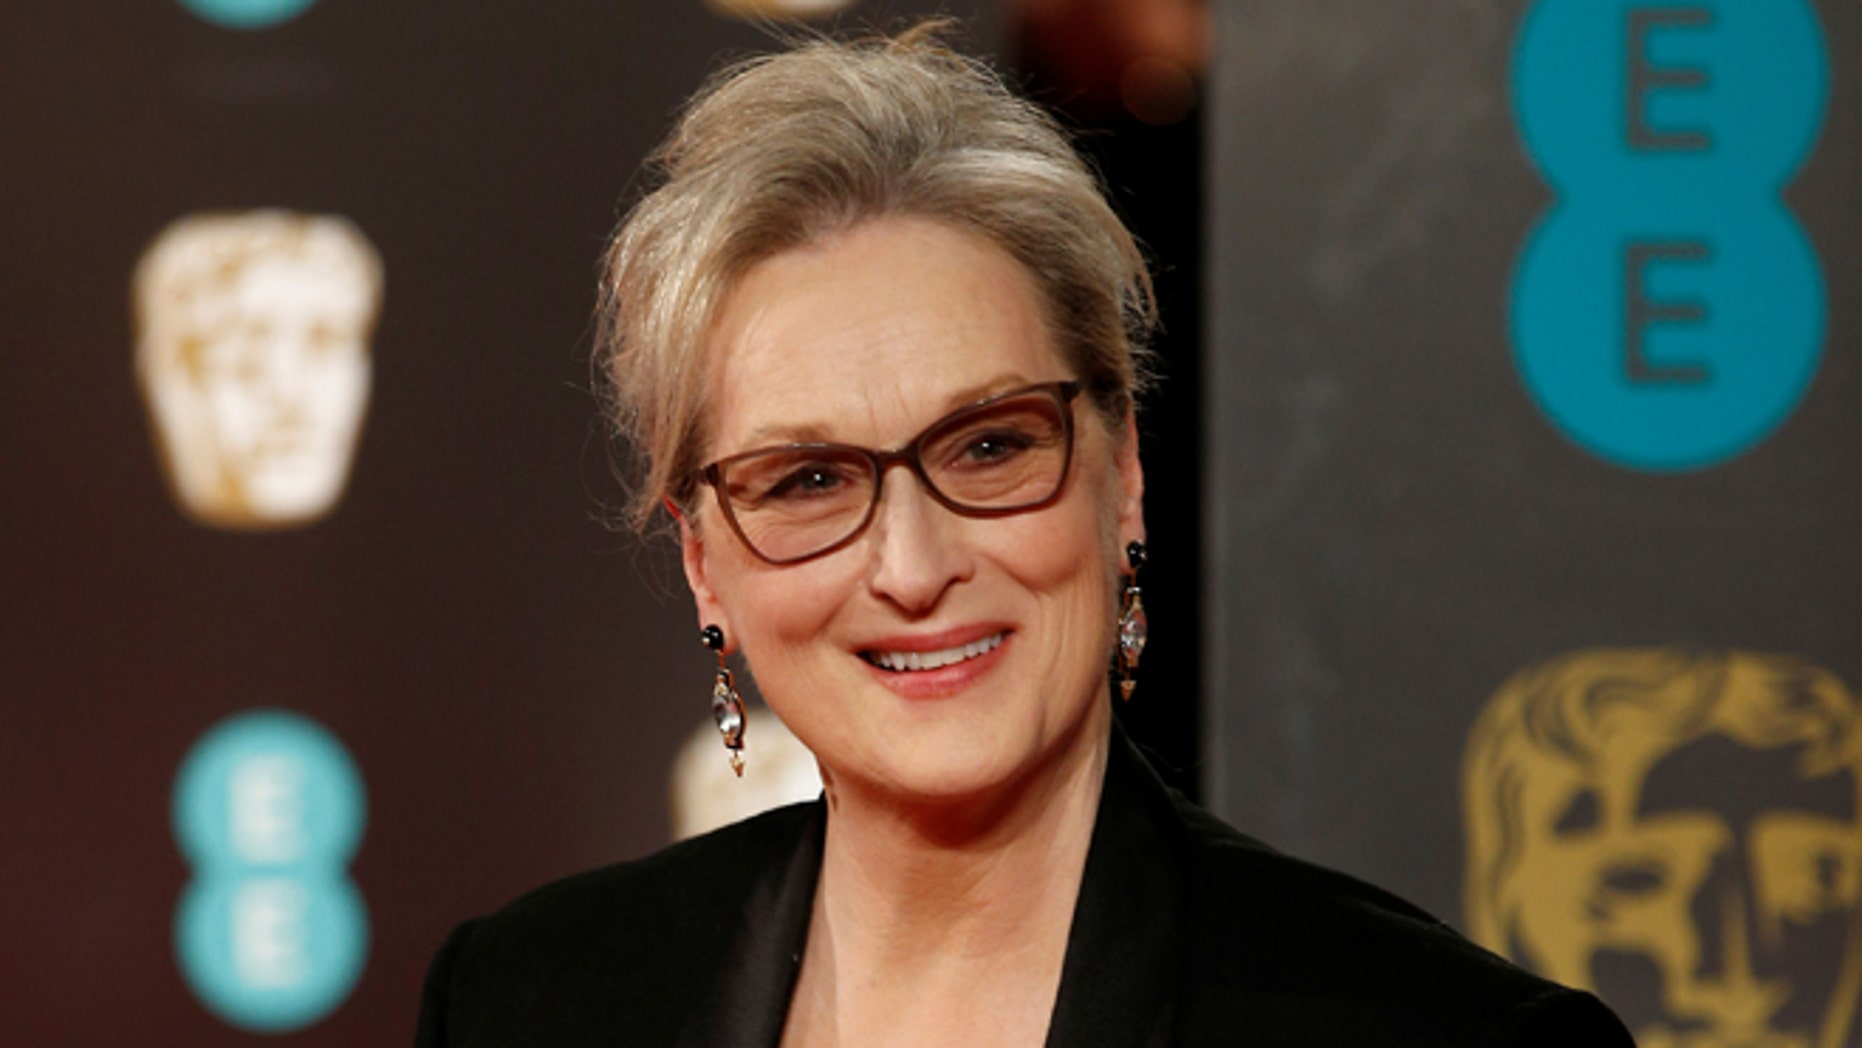 Meryl Streep denies a claim that she refused to wear a Chanel dress unless she received payment.